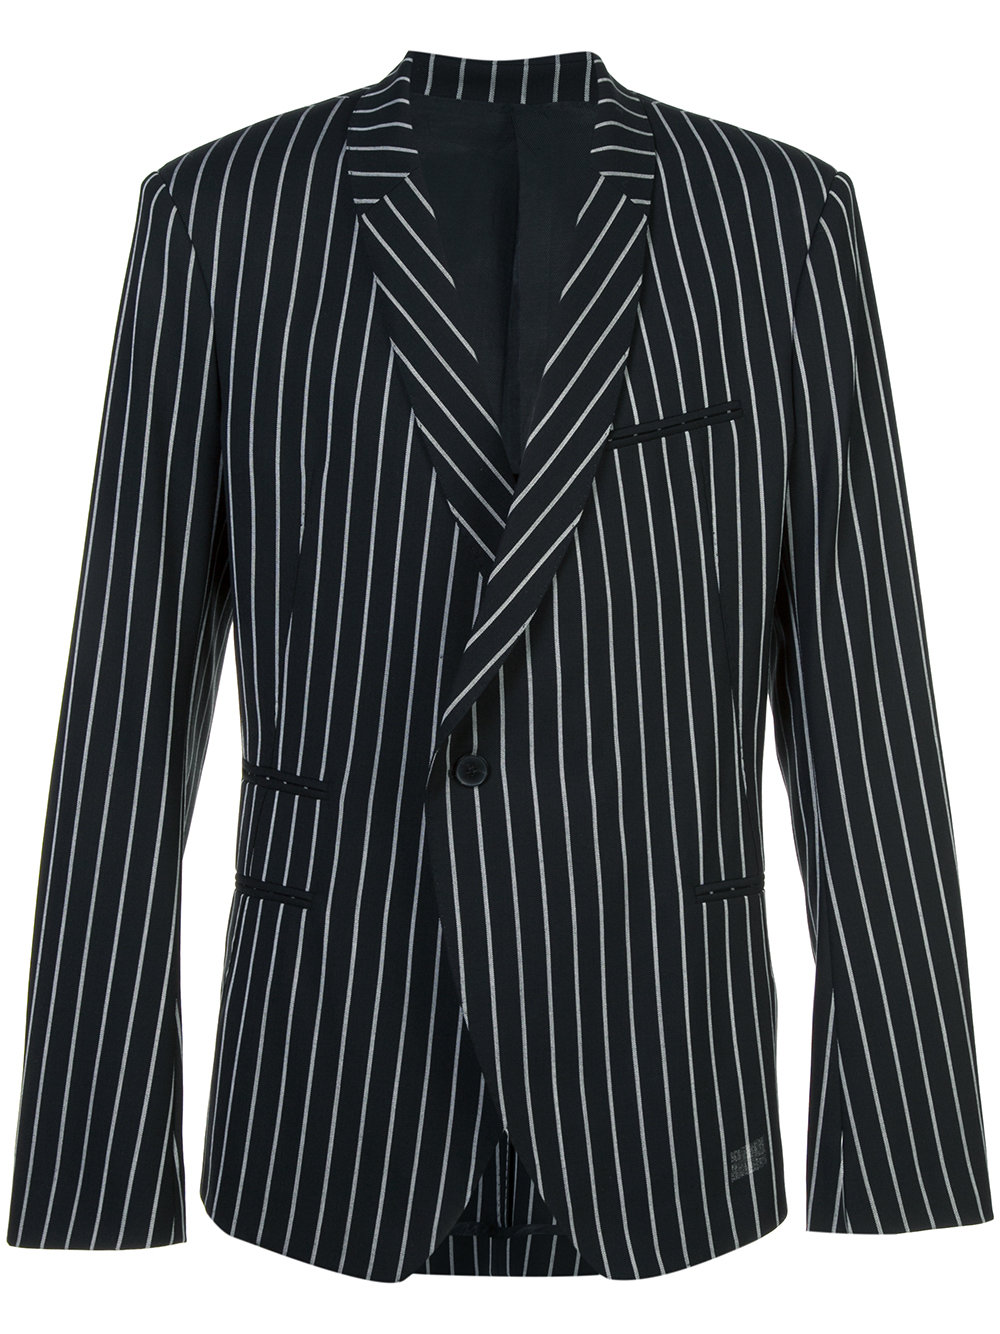 Haider Ackermann   Black and White Stripe Tailored Blazer